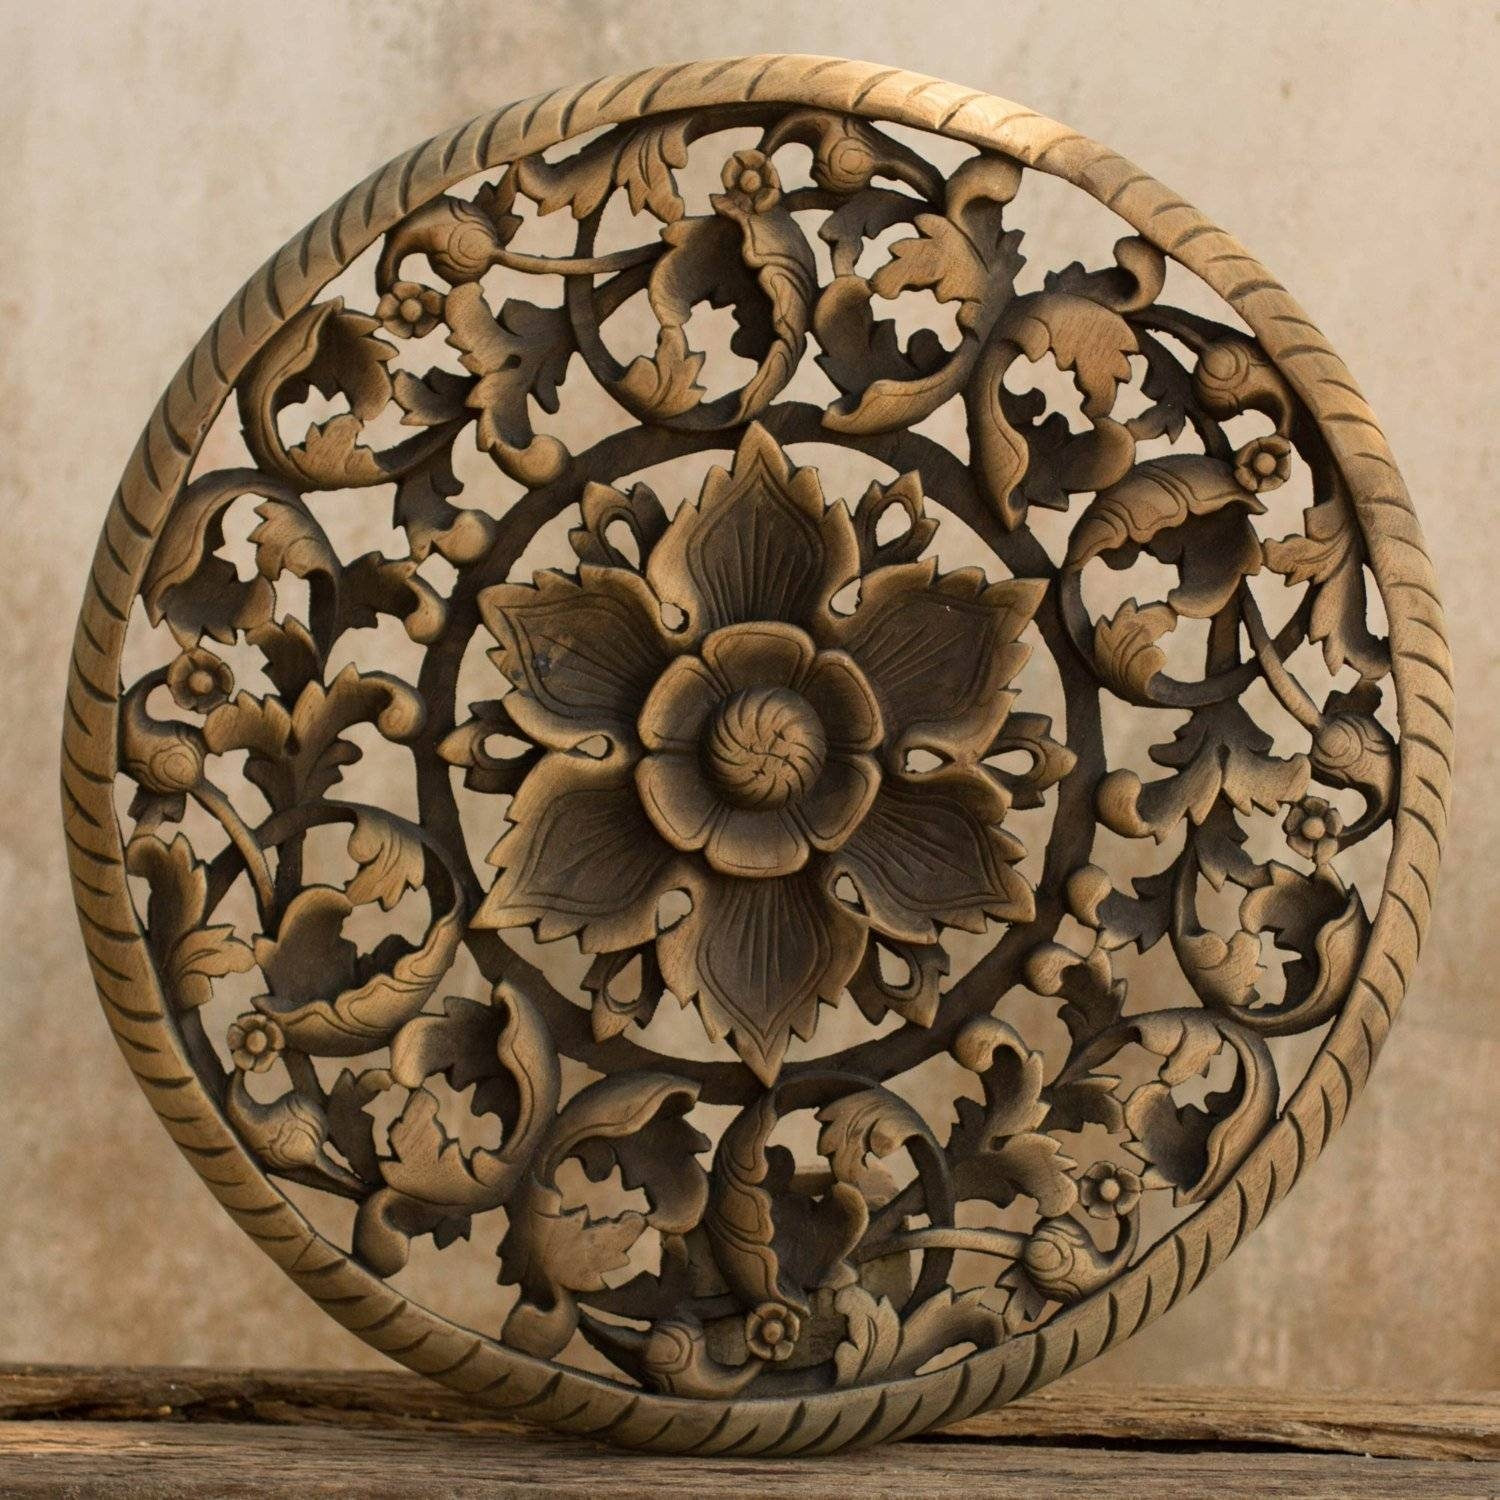 Tree Dimensional Floral Wooden Wall Hanging – Siam Sawadee Inside Most Up To Date Wood Wall Art Panels (View 14 of 20)